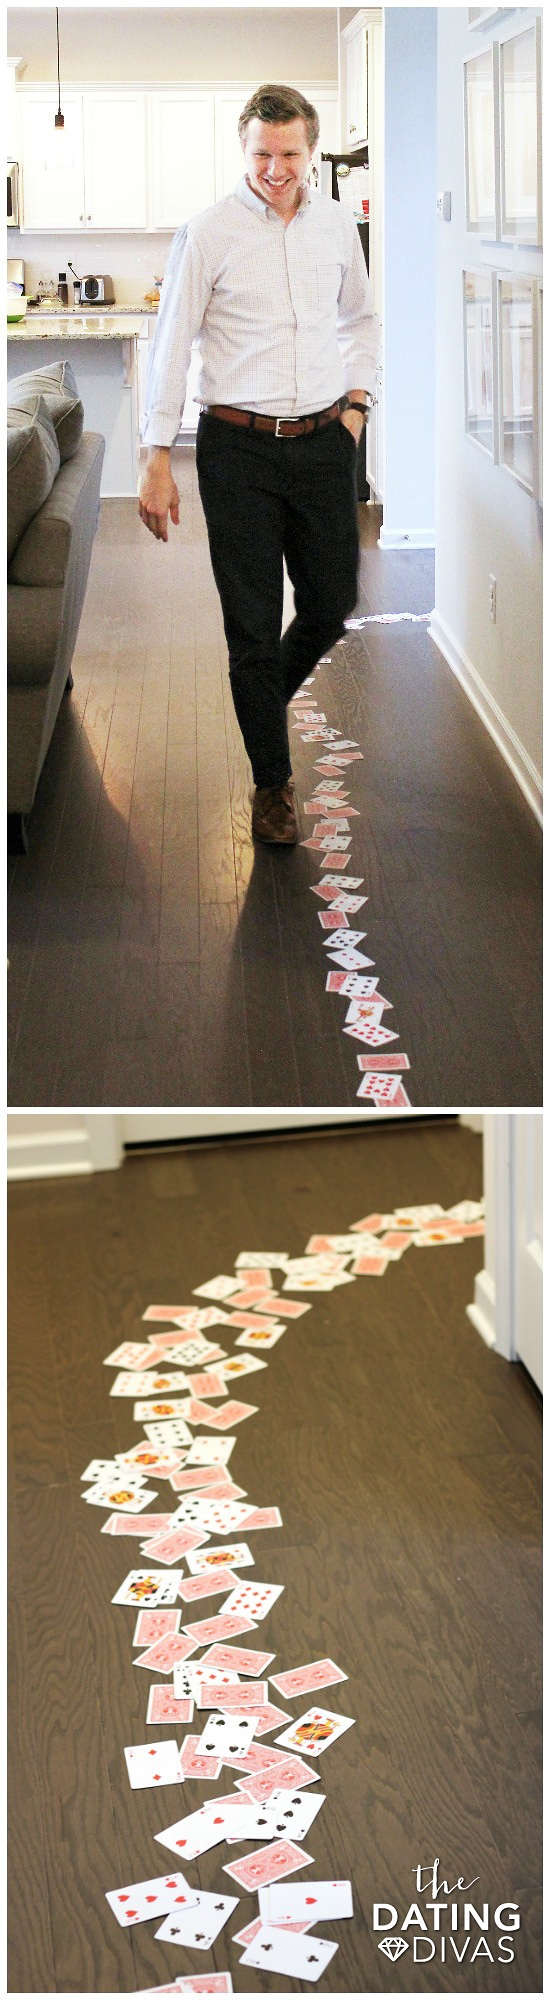 Sexy Cards Trail Bedroom Idea